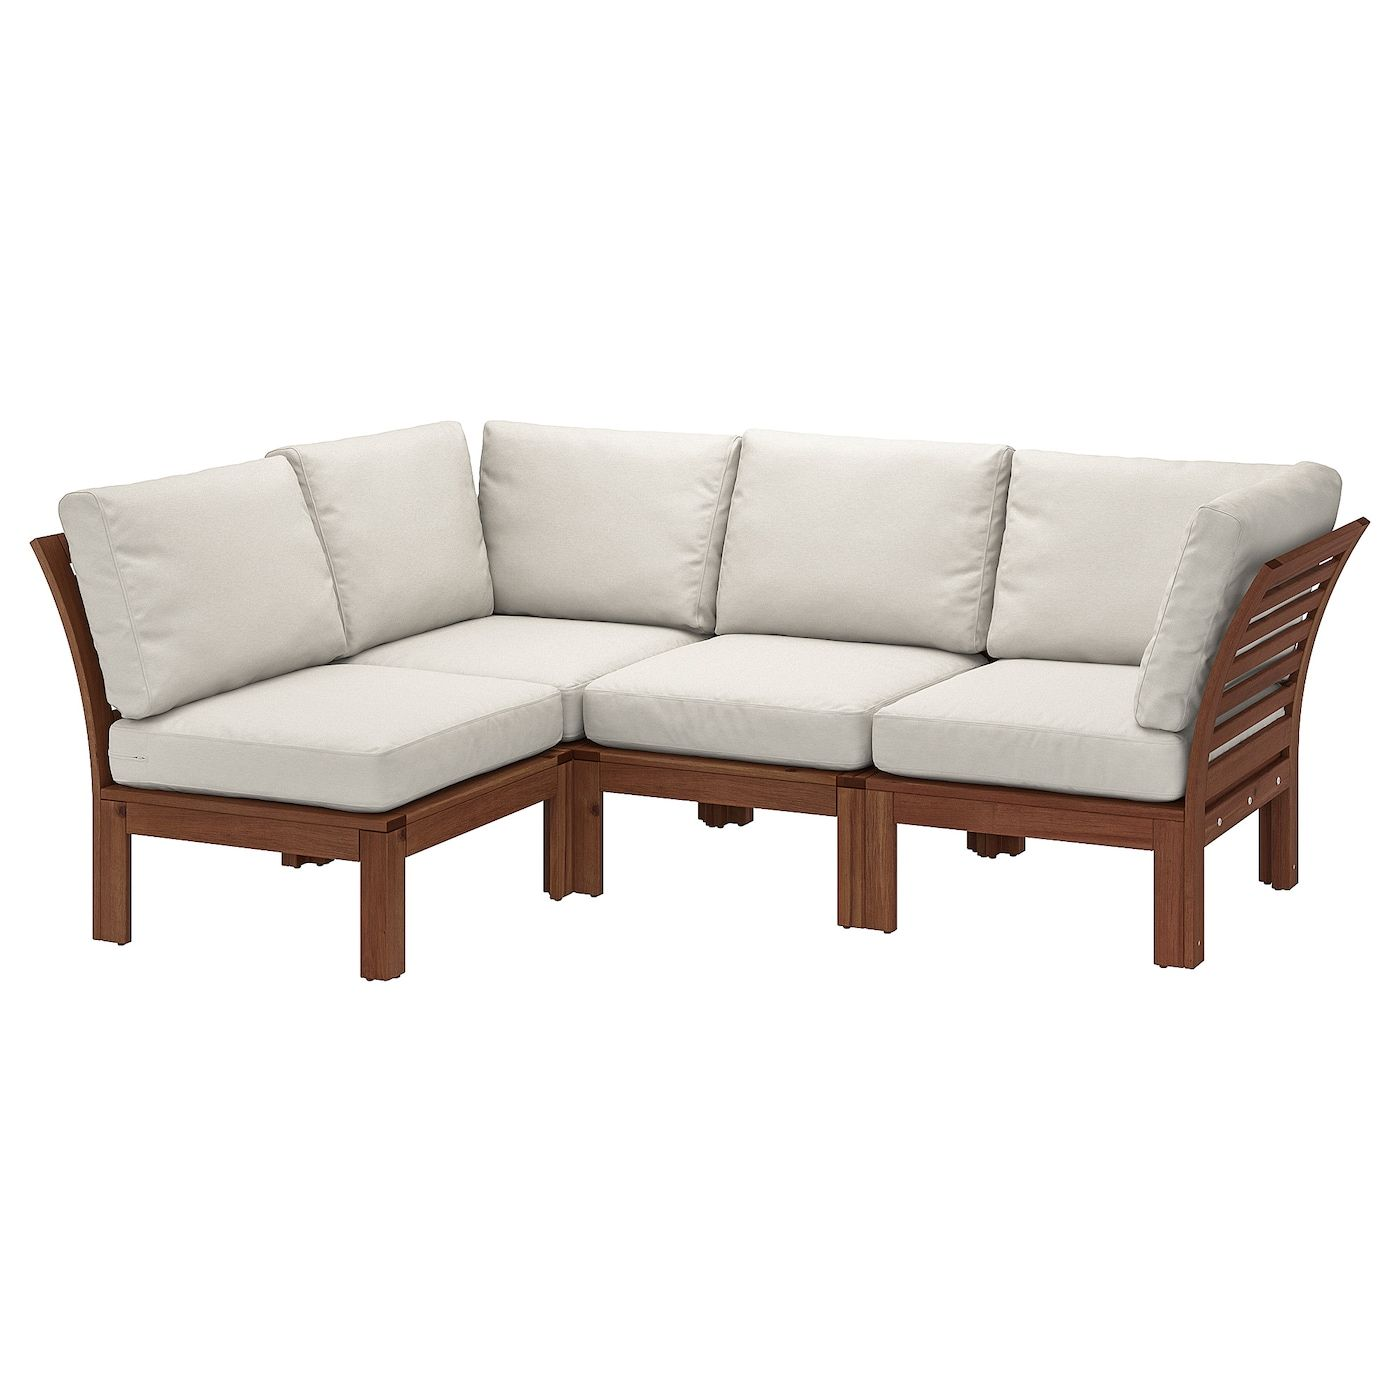 Applaro Modular Corner Sofa 3 Seat Outdoor Brown Stained Froson Duvholmen Beige 56 1 4 87 3 4x31 1 2x33 1 8 In 2020 Modular Corner Sofa Corner Sofa Outdoor Sofa